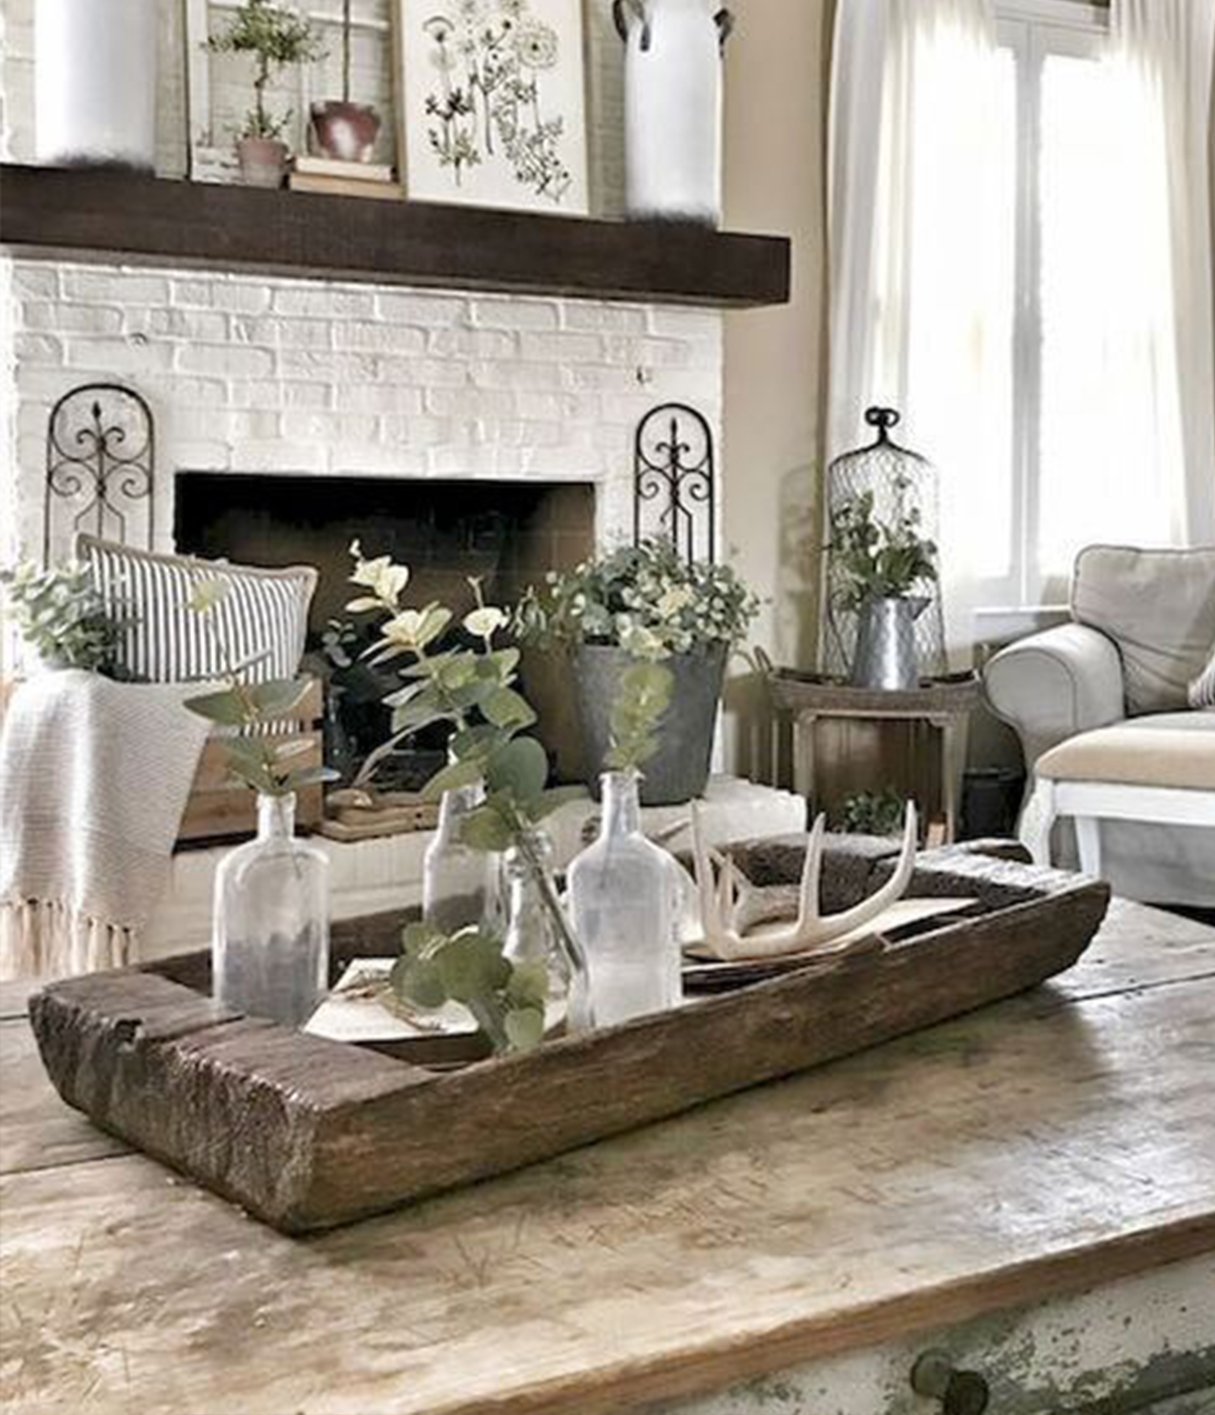 Coffee Table Decor Ideas Under $100